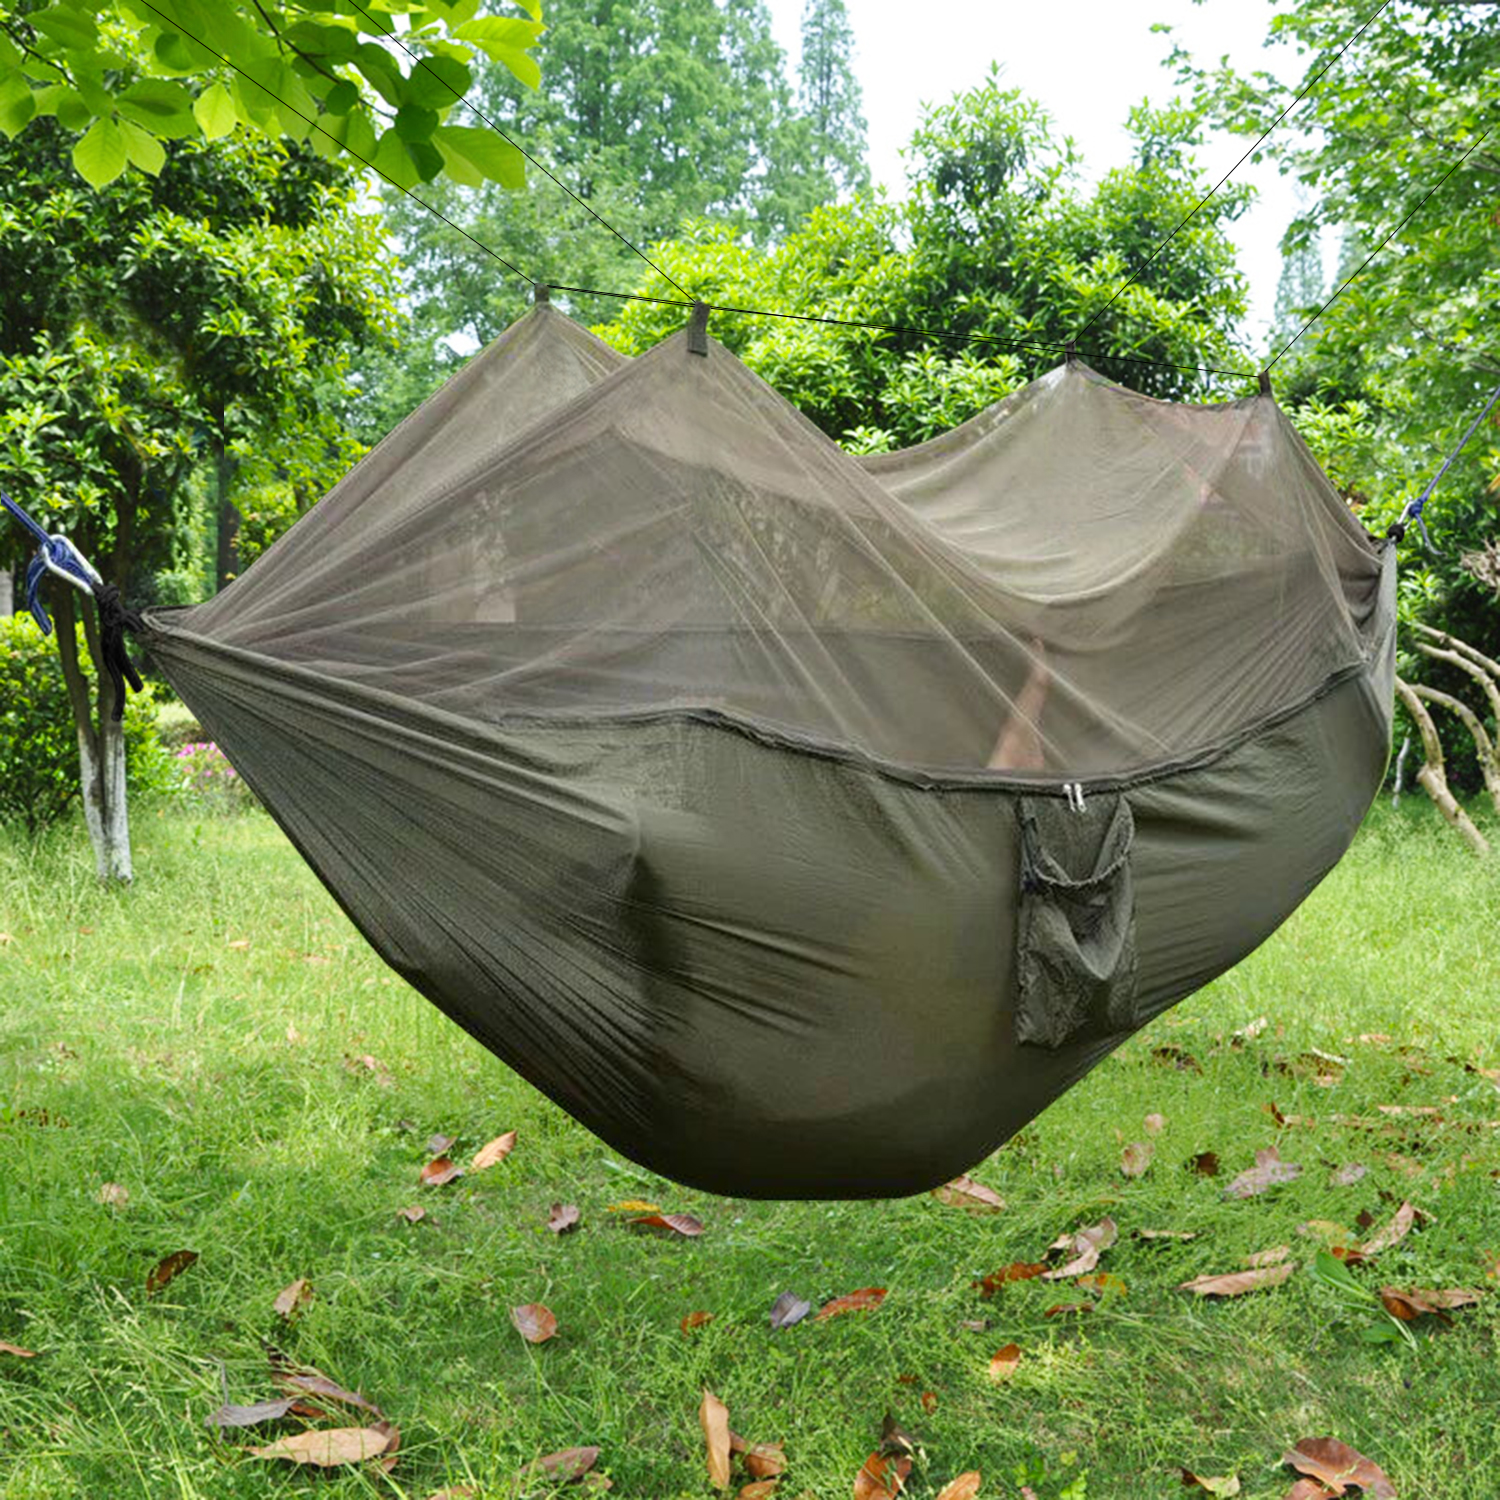 forest heavier specialist xlc person tent the original zone blackbird use netting system amp sans removable list top than high its is hammock gear larger backpacking